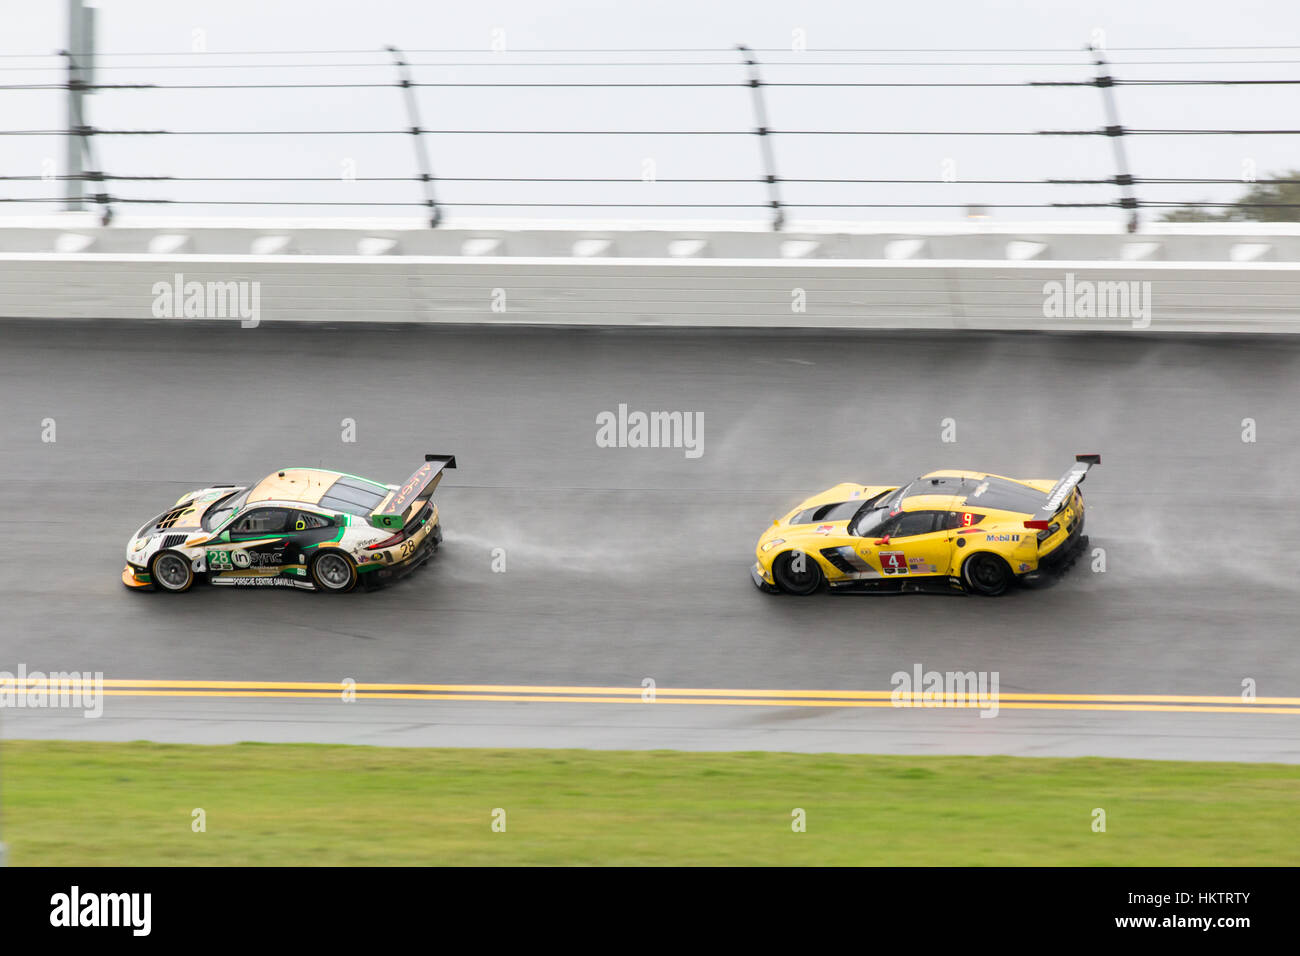 Daytona Beach, USA. 29th January, 2017. Drivers battle overnight rain and wet track conditions at the Daytona International Stock Photo